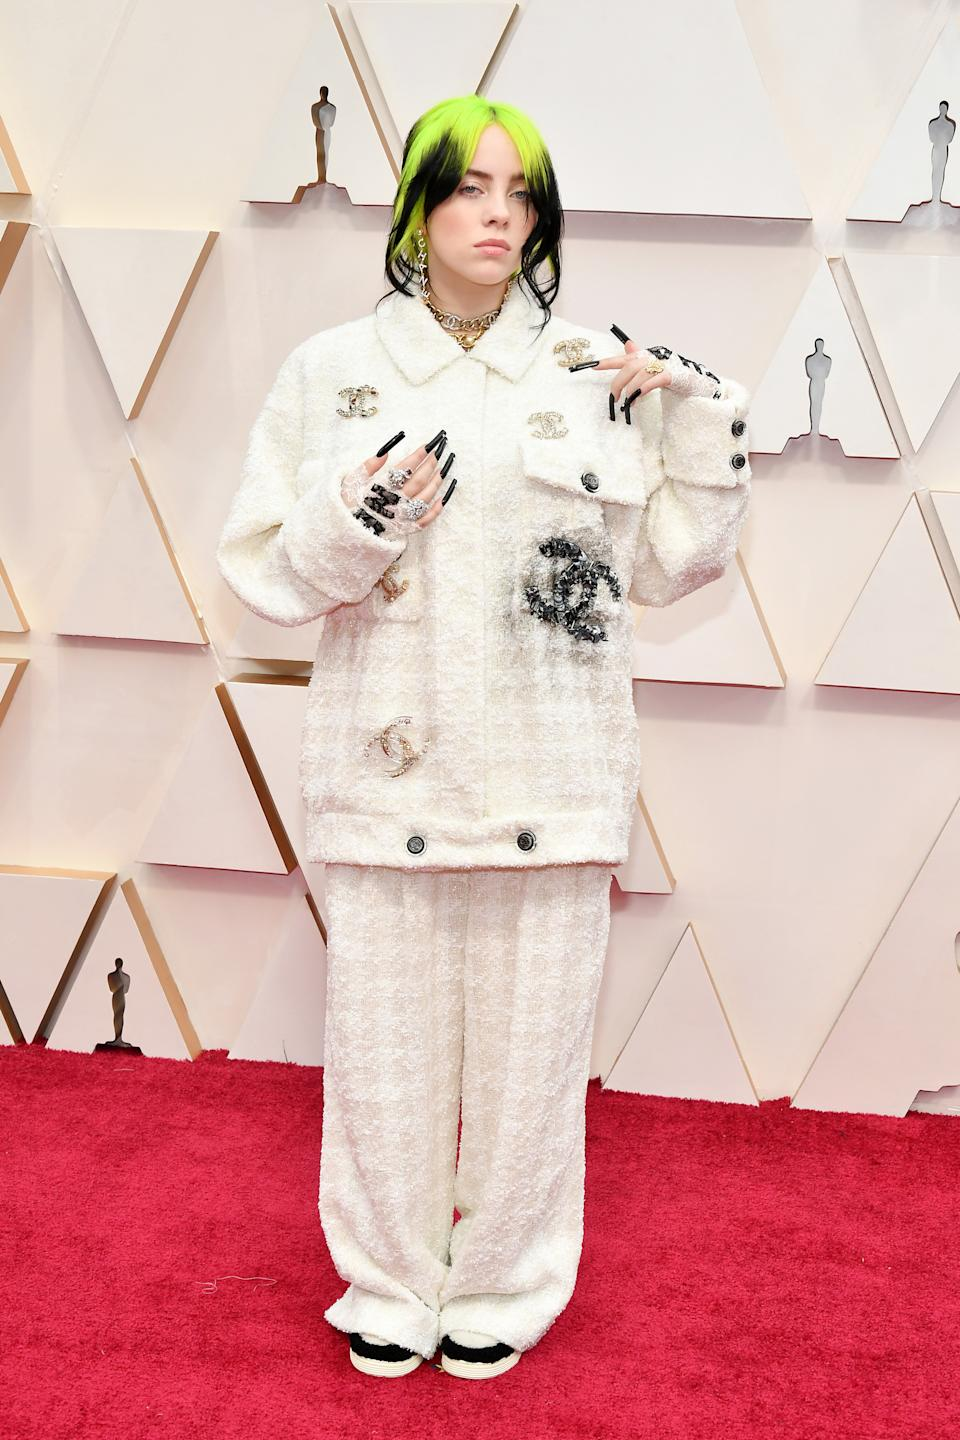 The Grammy winner wore head-to-toe Chanel for her first Oscars red carpet.